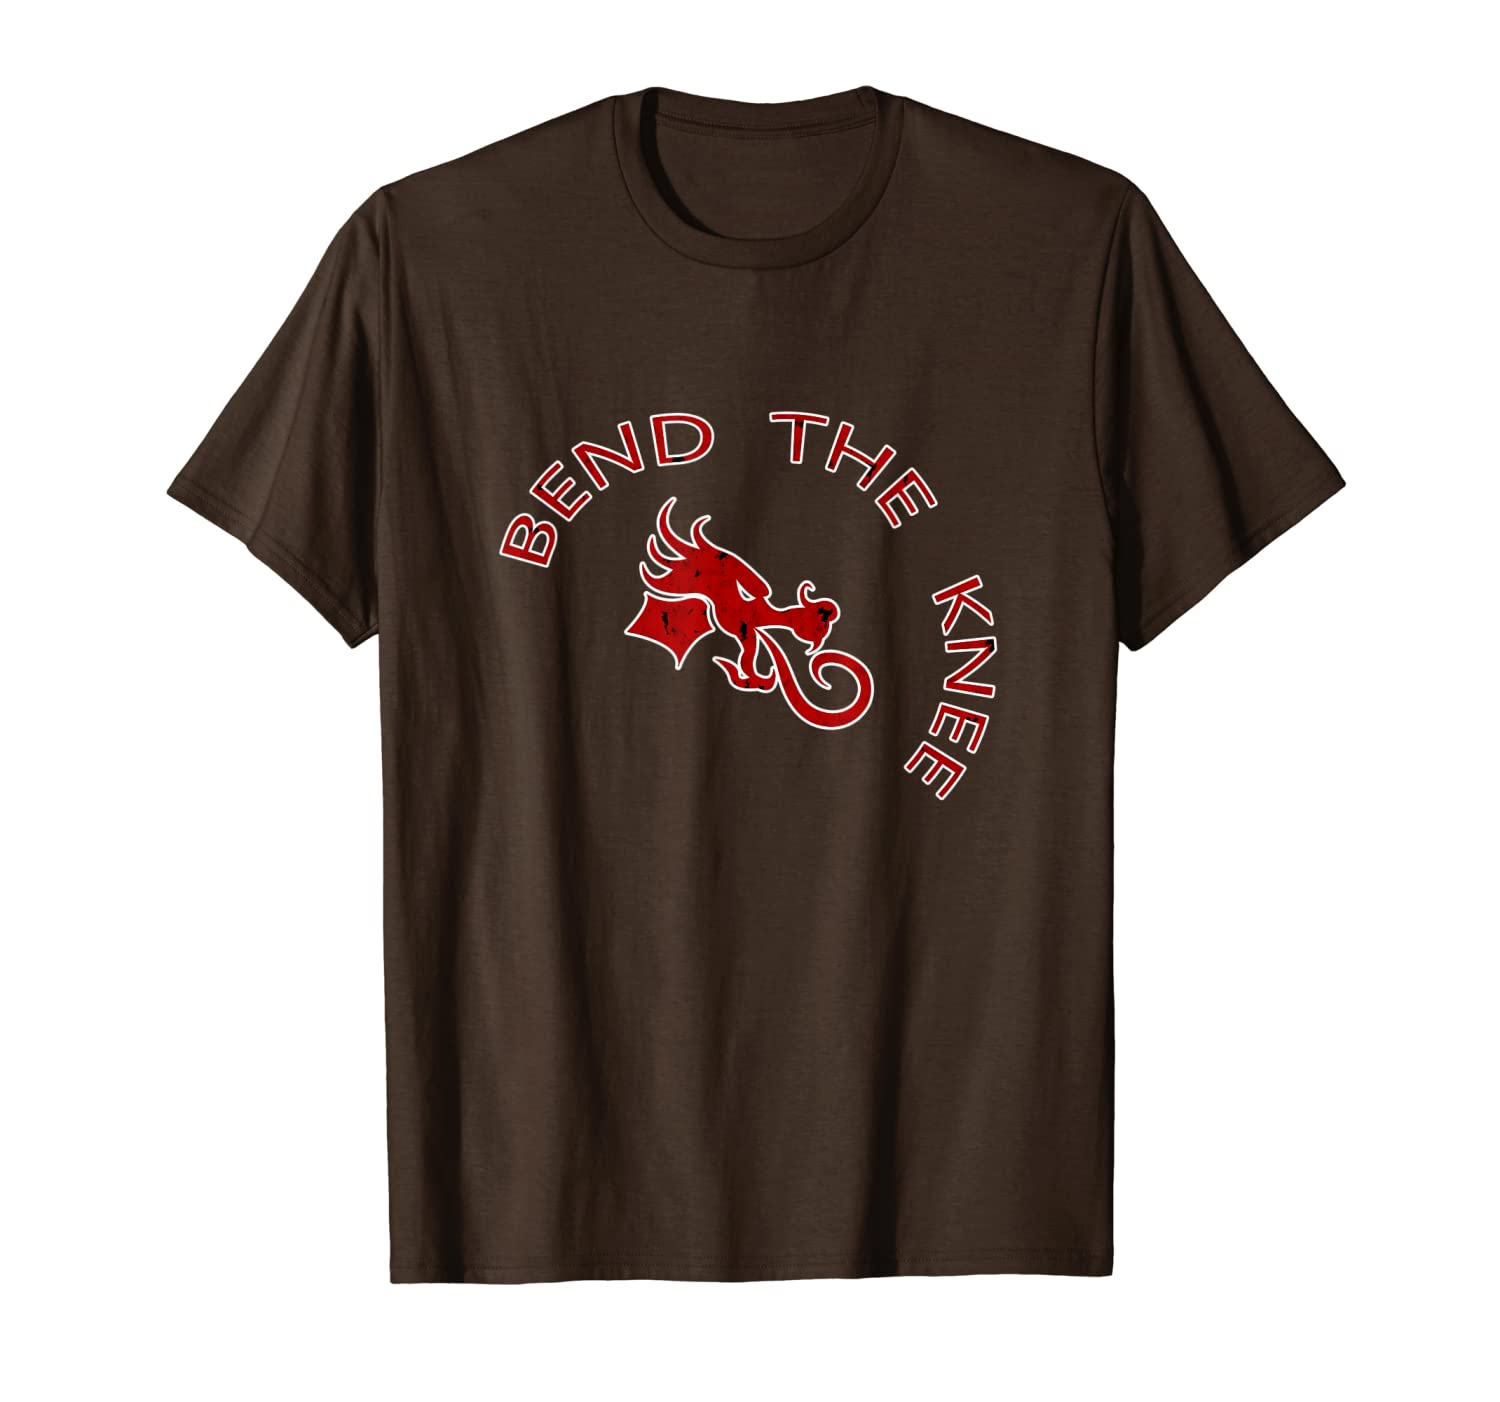 Bend The Knee - Medieval Dragon Heraldry Tee Shirt-TH